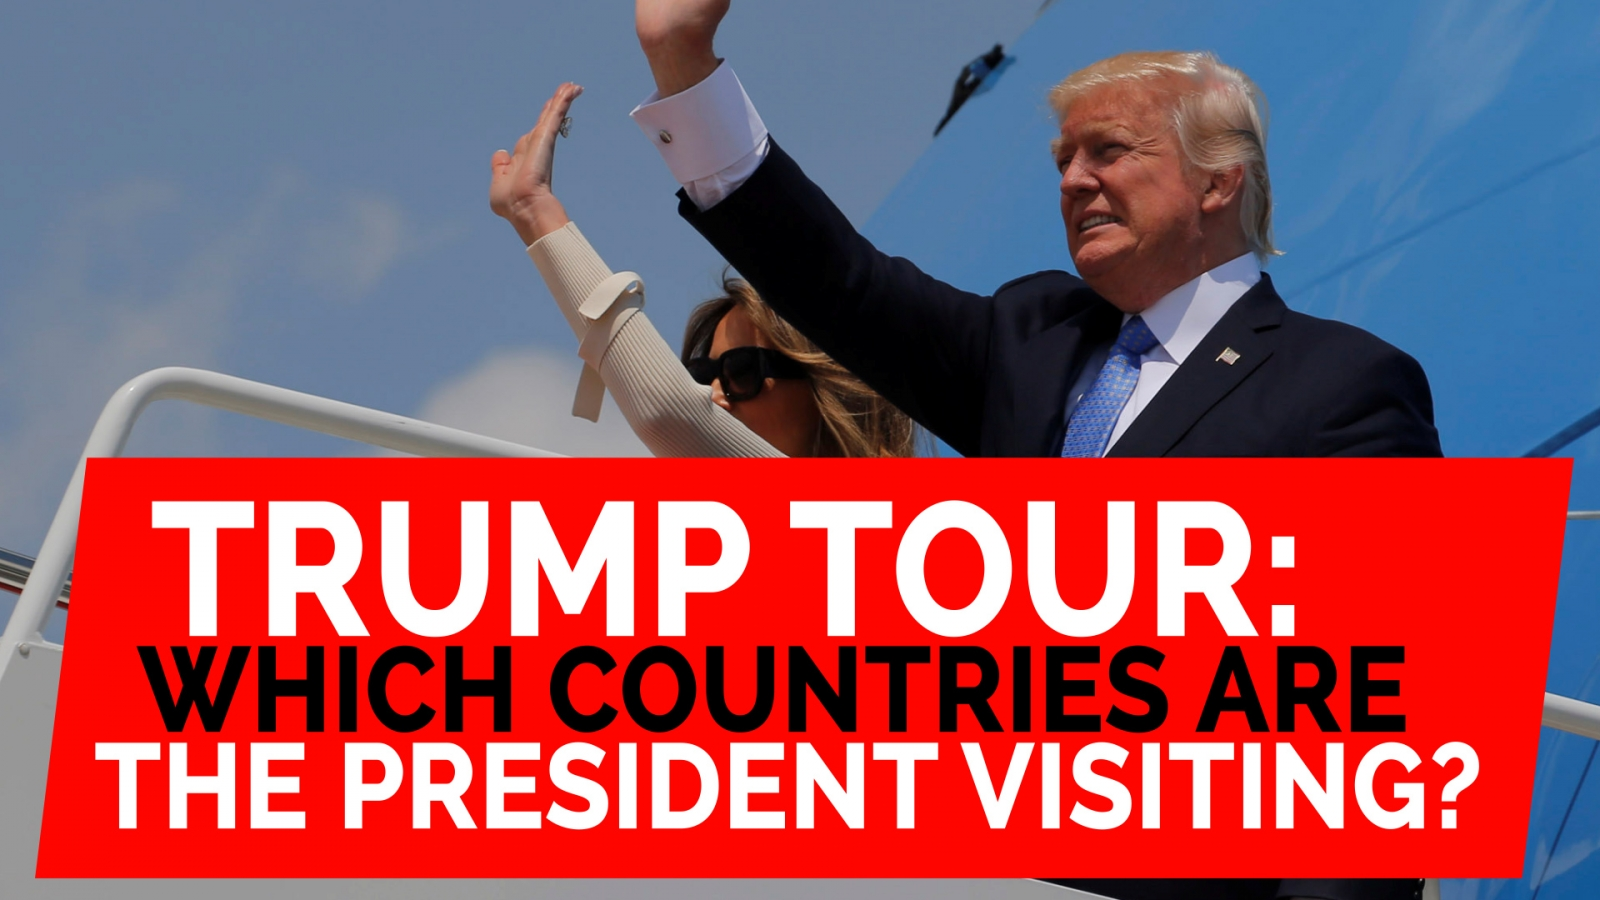 Trump's International Tour: Which Countries Are The President Visiting?